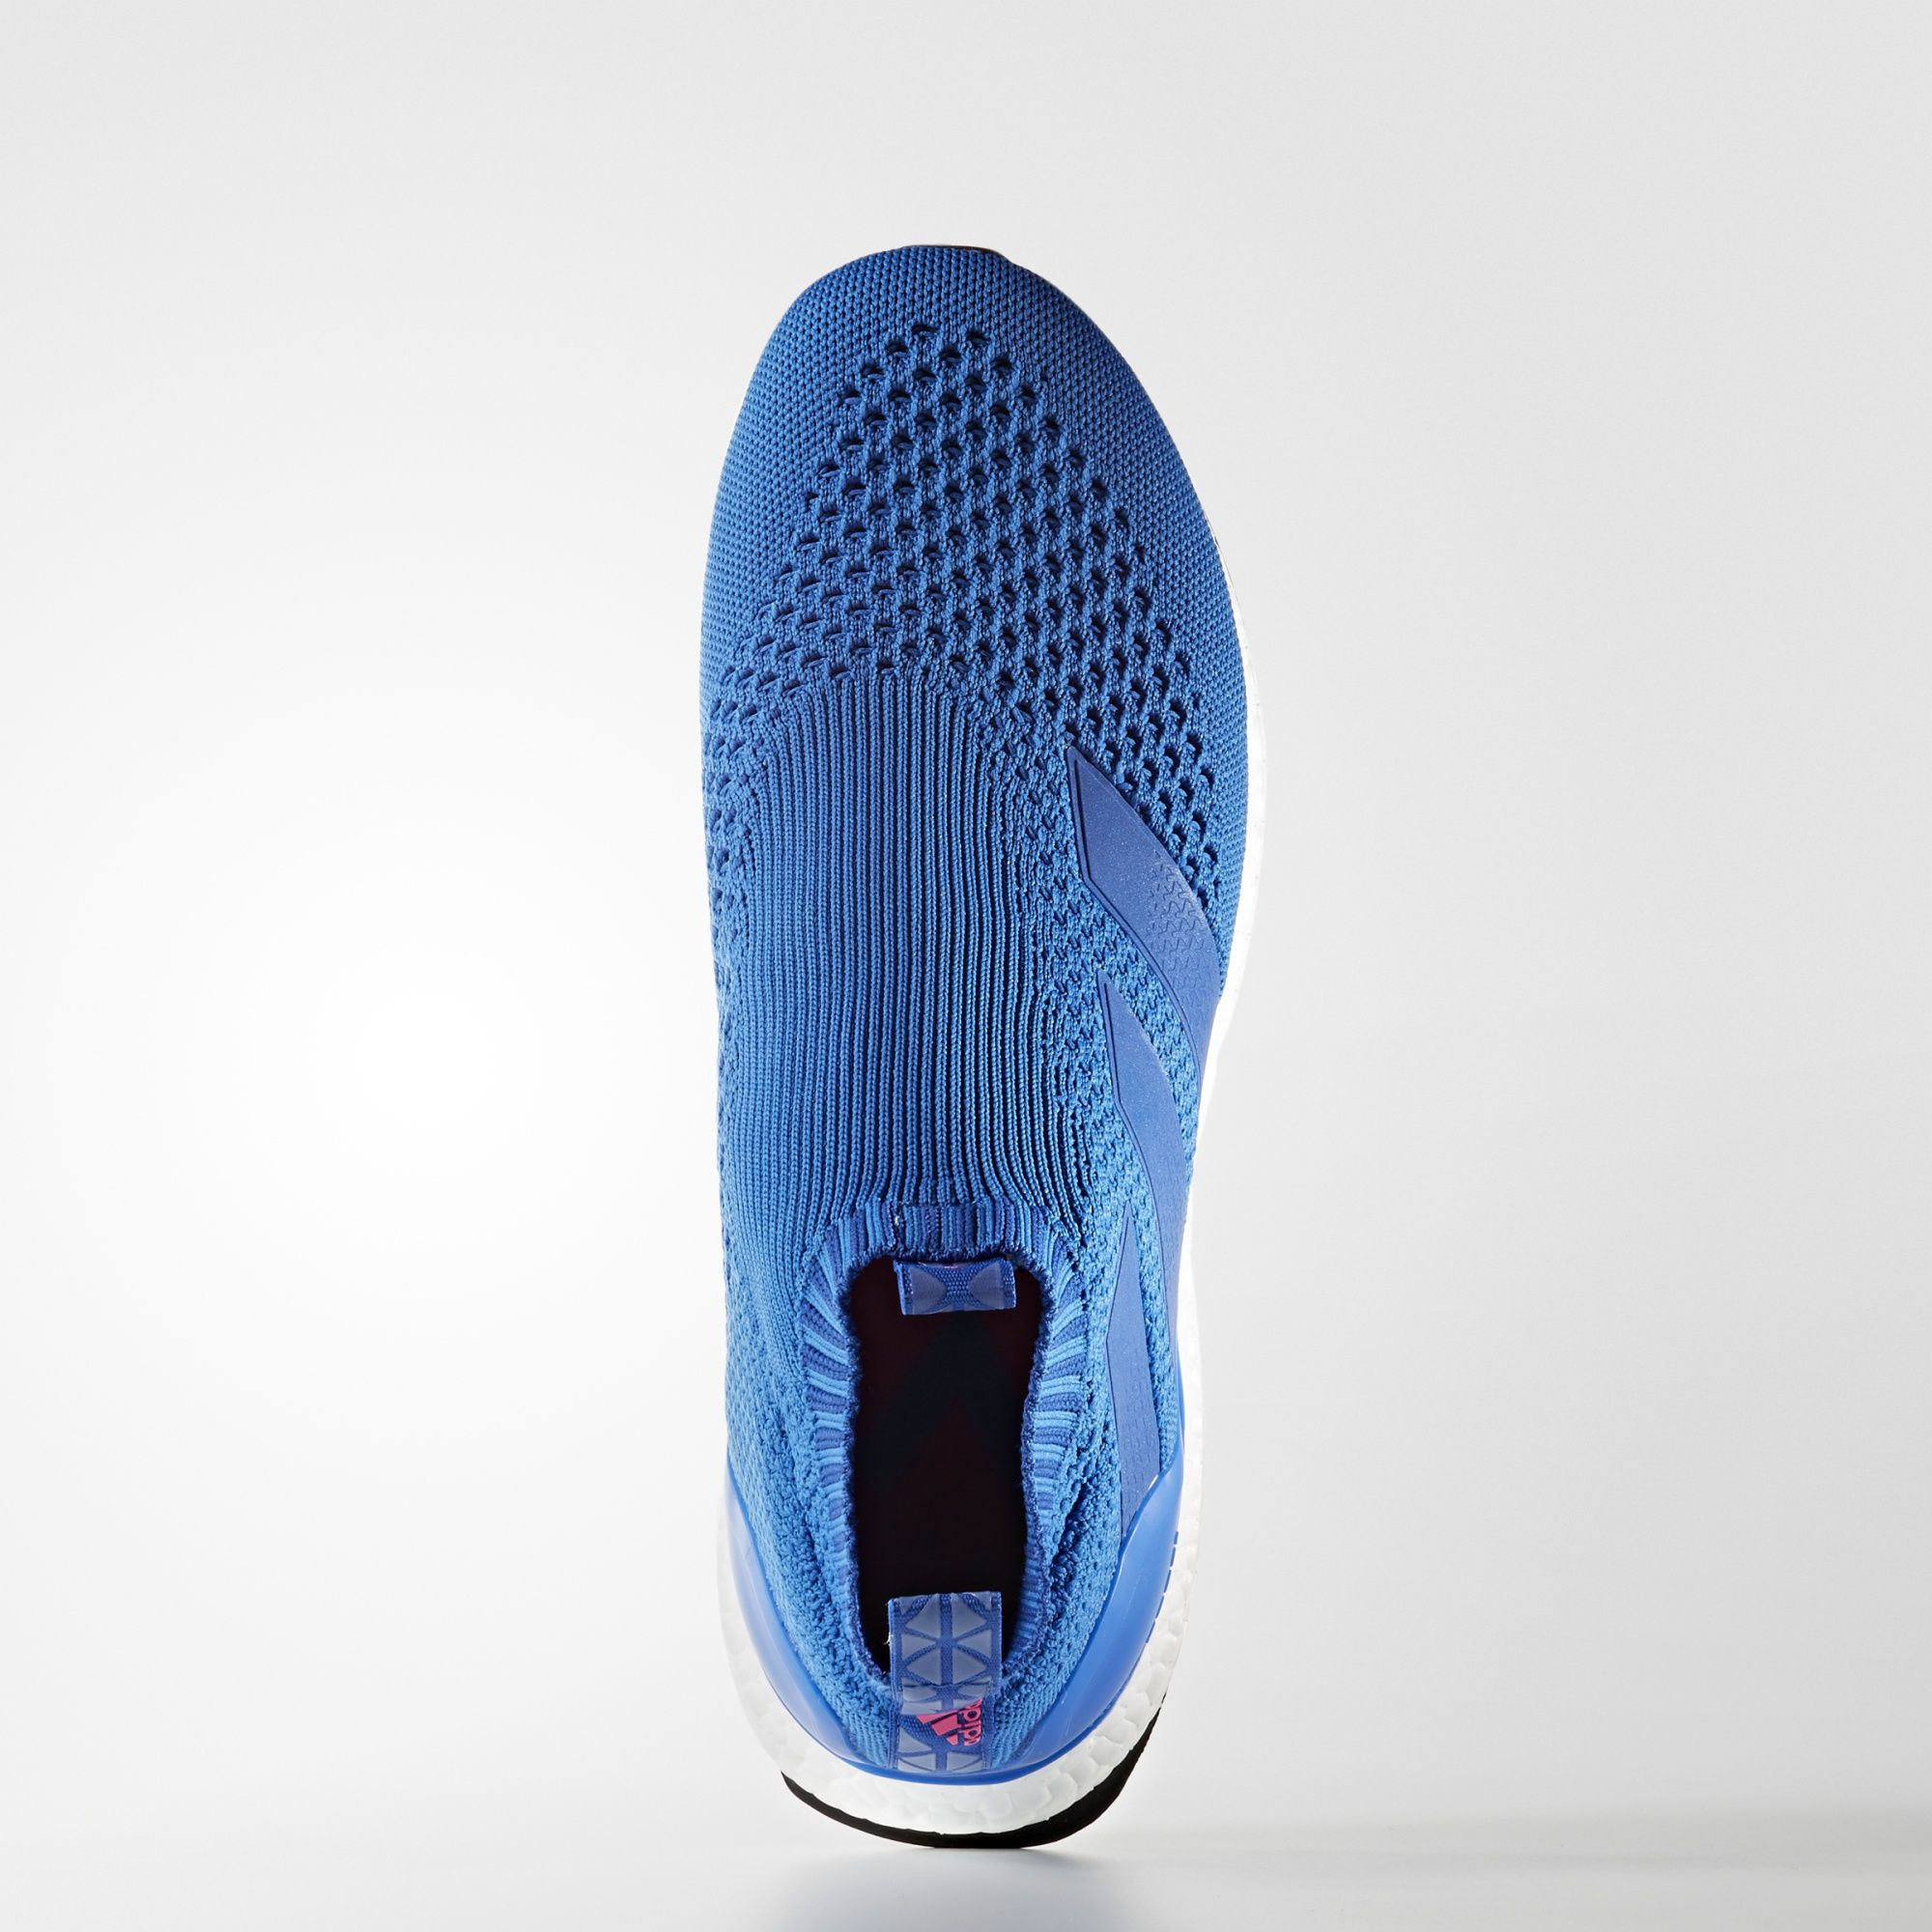 adidas ACE 16 Purecontrol Ultra Boost Blue BY9090 1